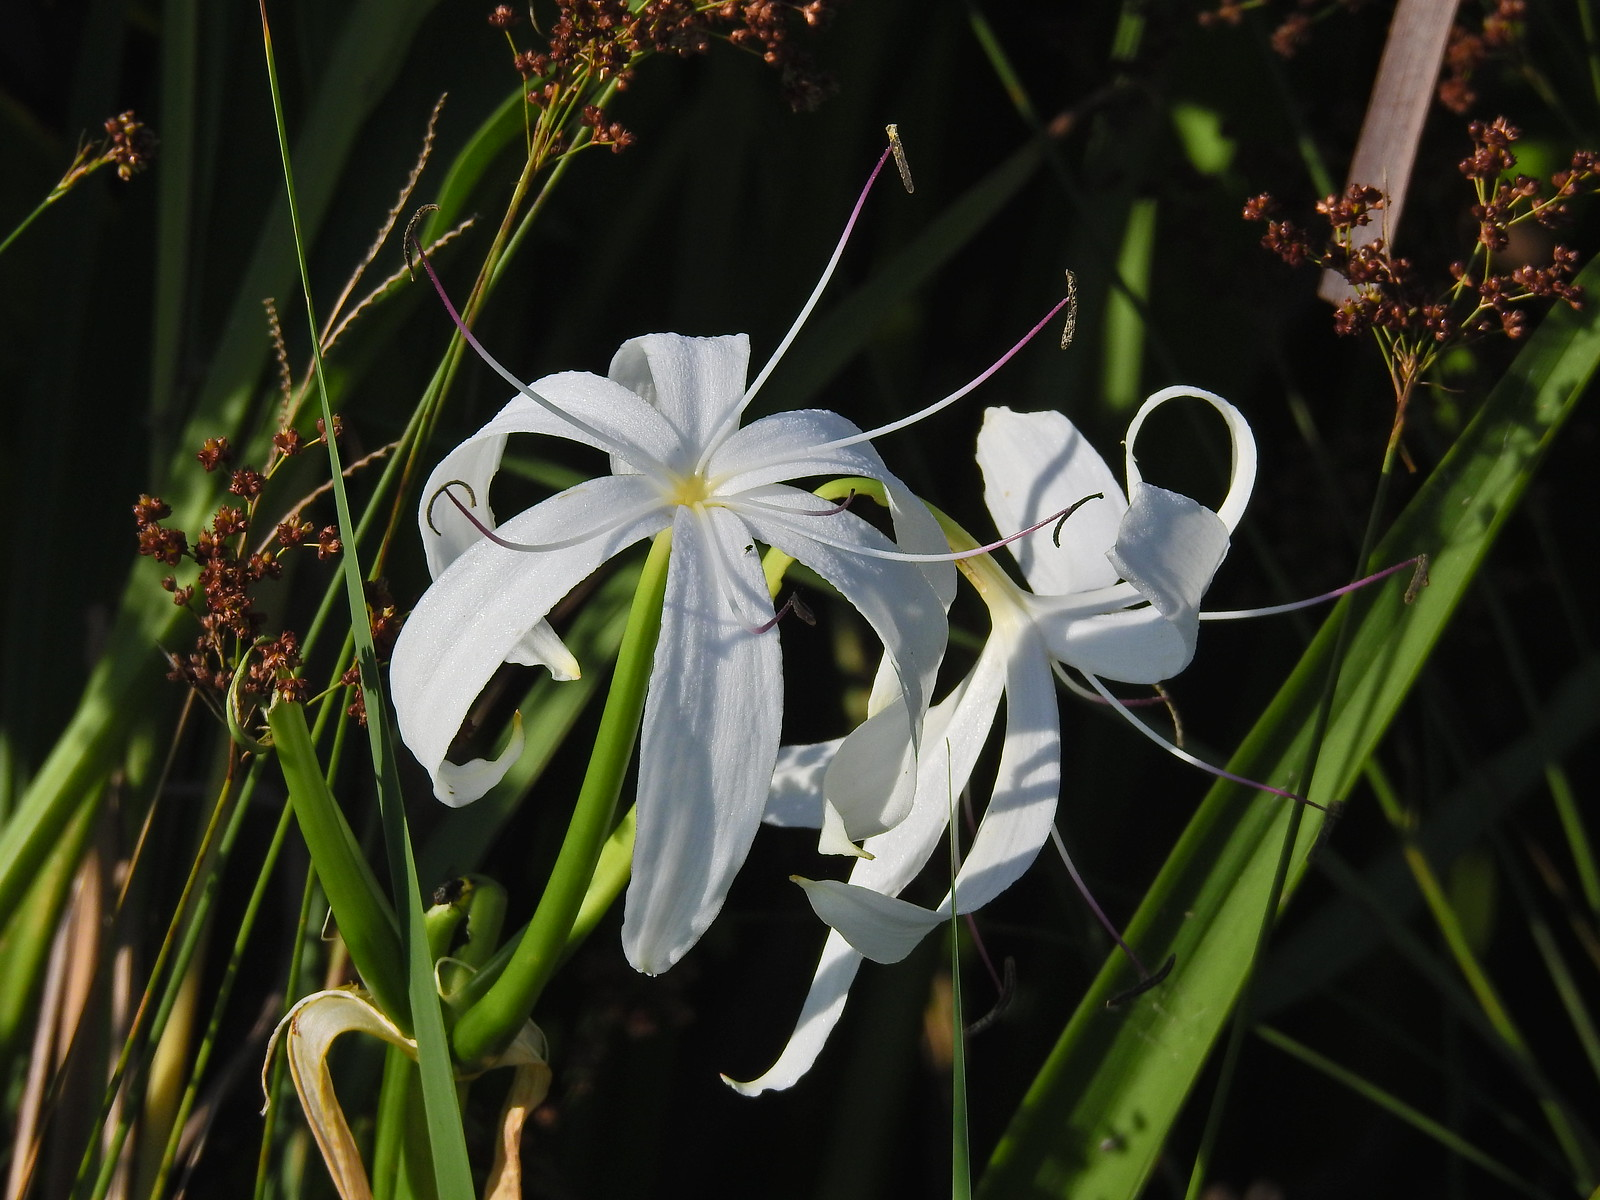 Swamp lily - One of the South Florida Flowers that looks the best